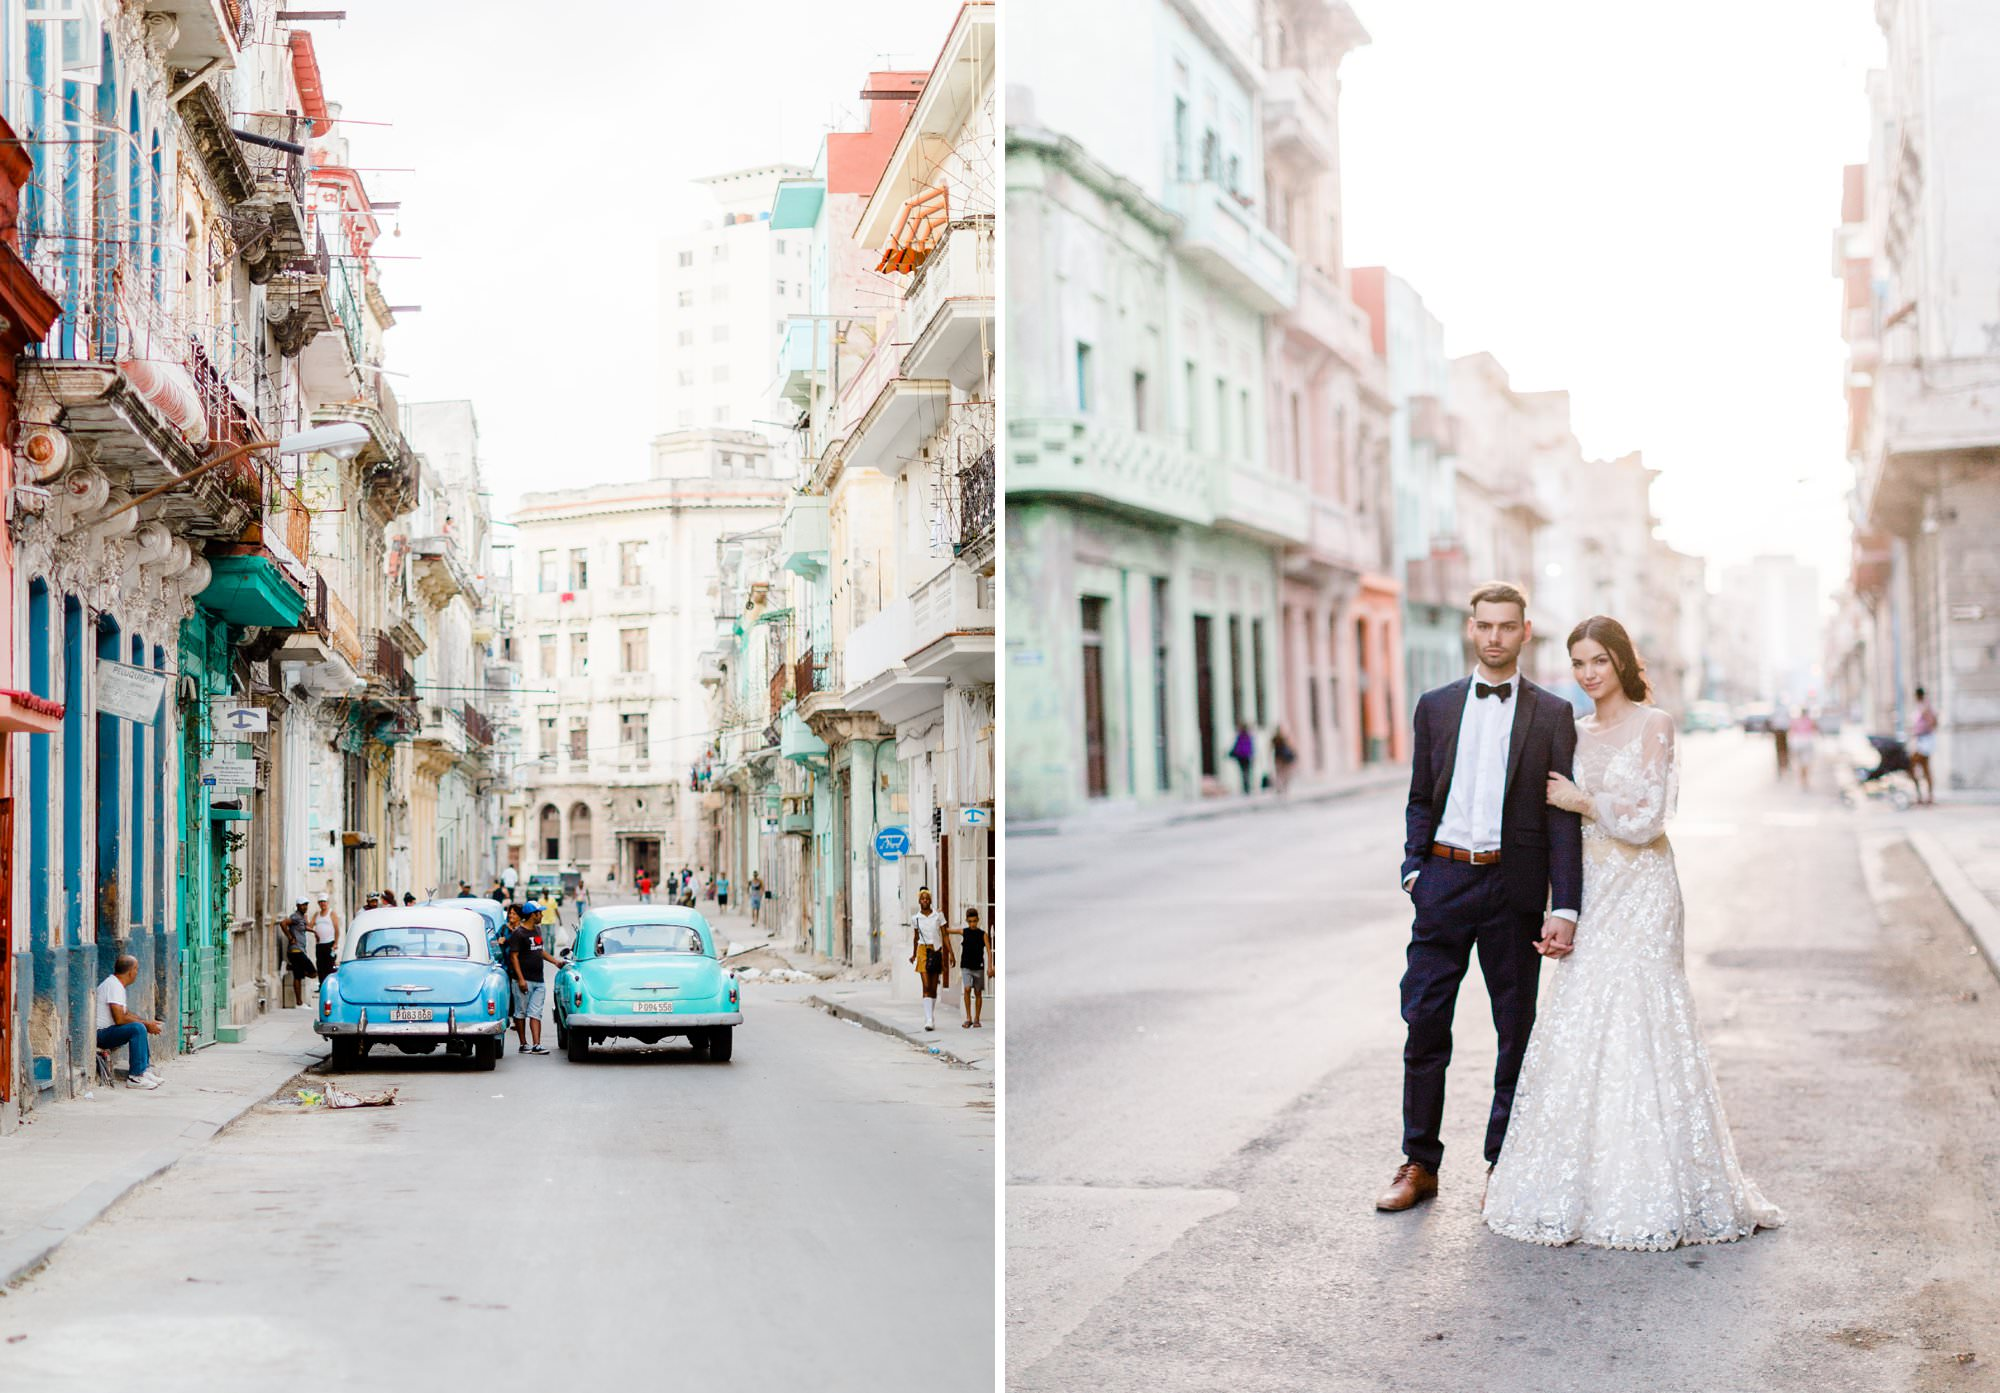 Eline-Jacobine-Bryllupsfotograf-destination-wedding-photographer-elopements-fine-art-wedding-film-photography-Contax-645-Havana-Cuba-travel-bryllup_0013